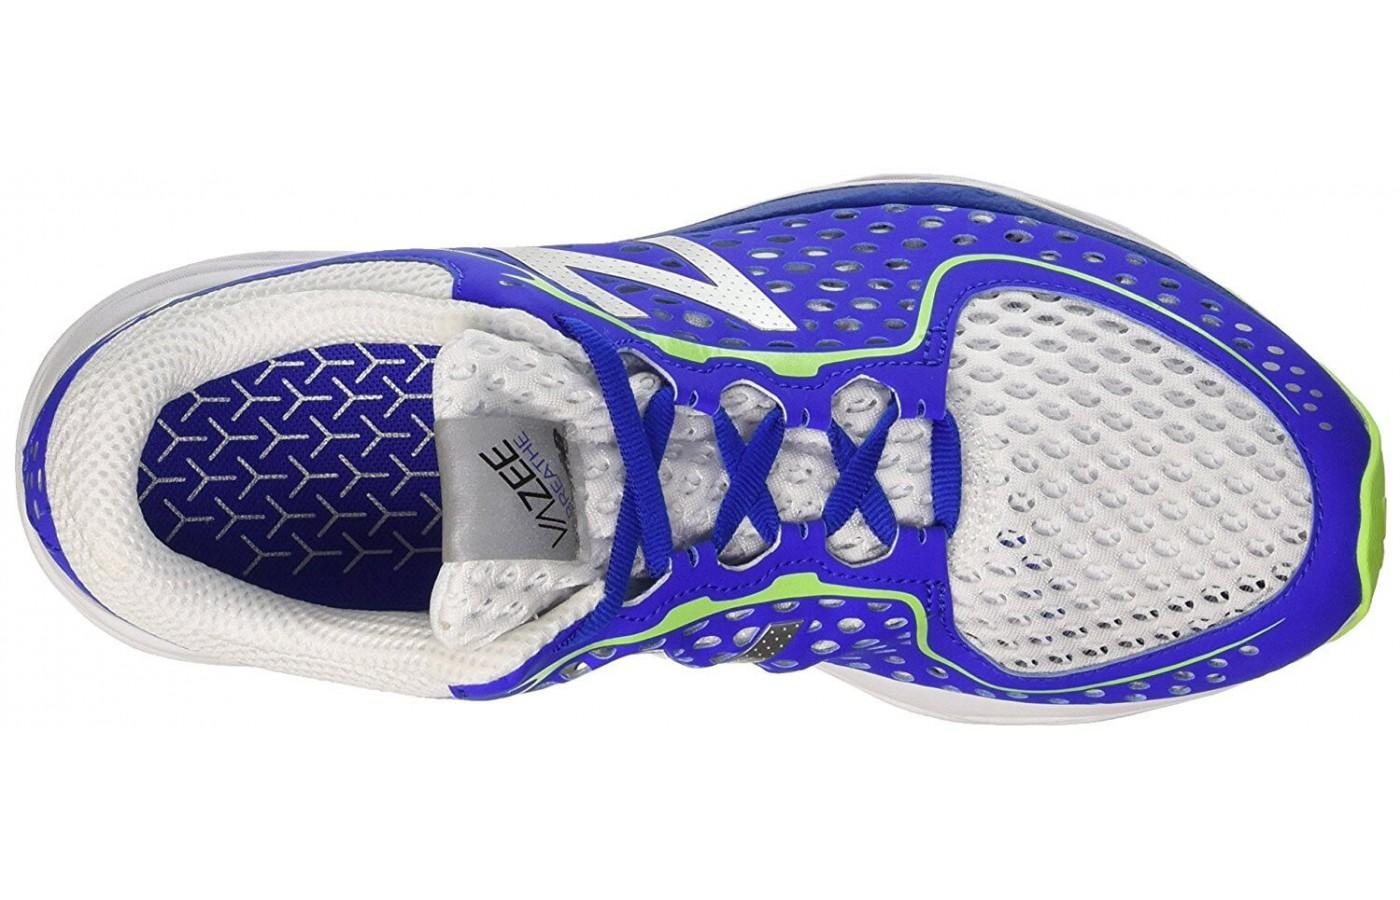 The breathable upper is a key feature of the New Balance Vazee Breathe.